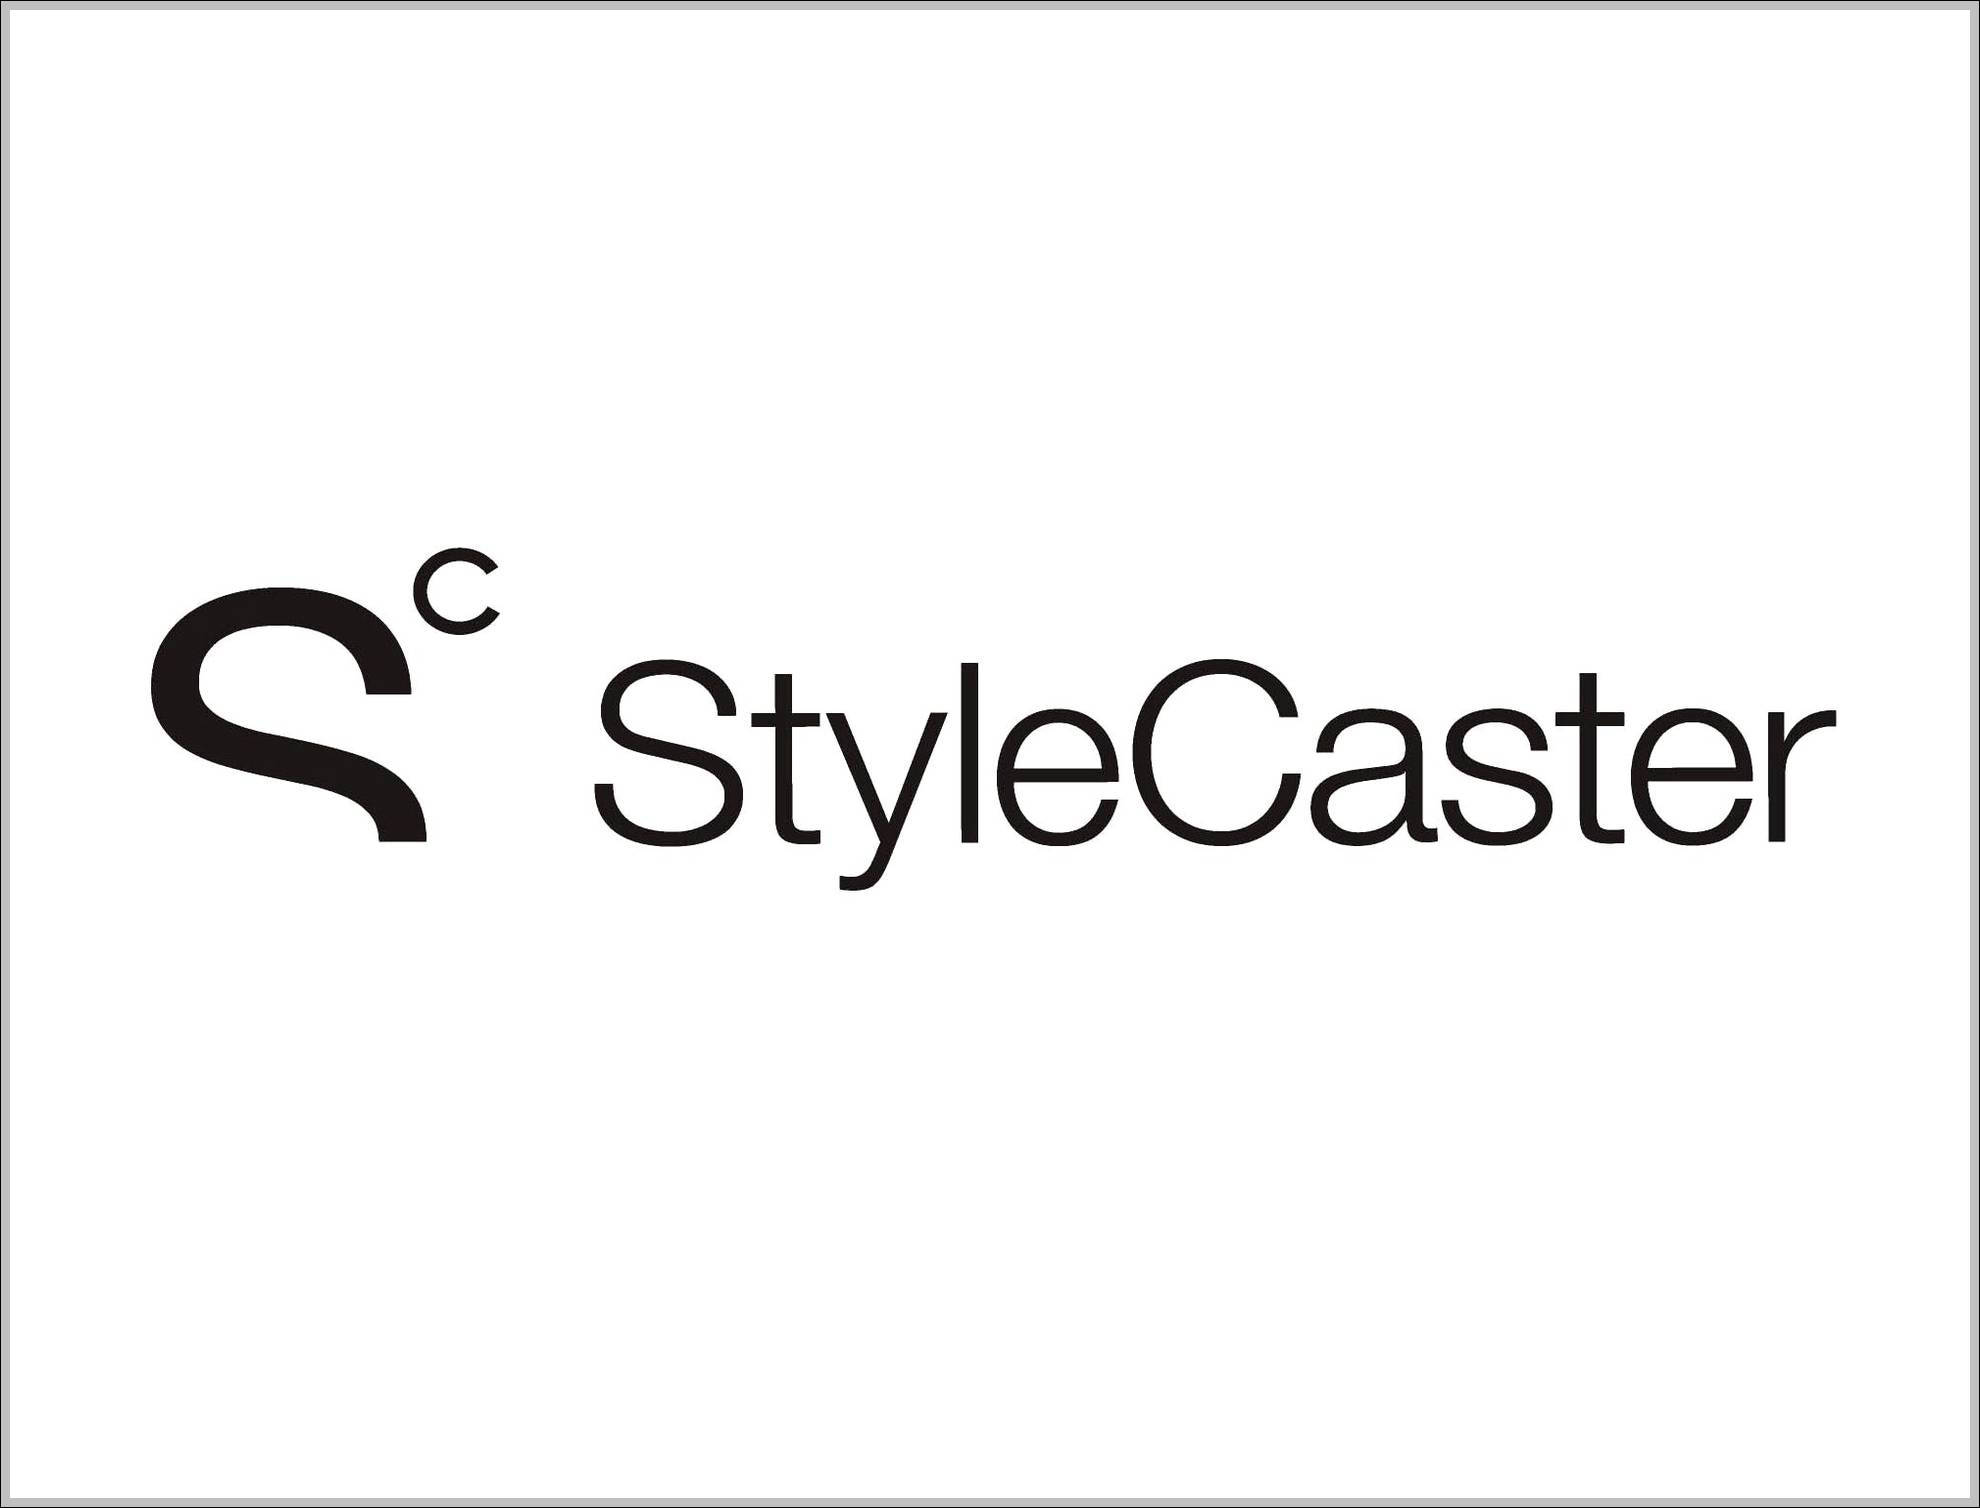 StyleCaster sign